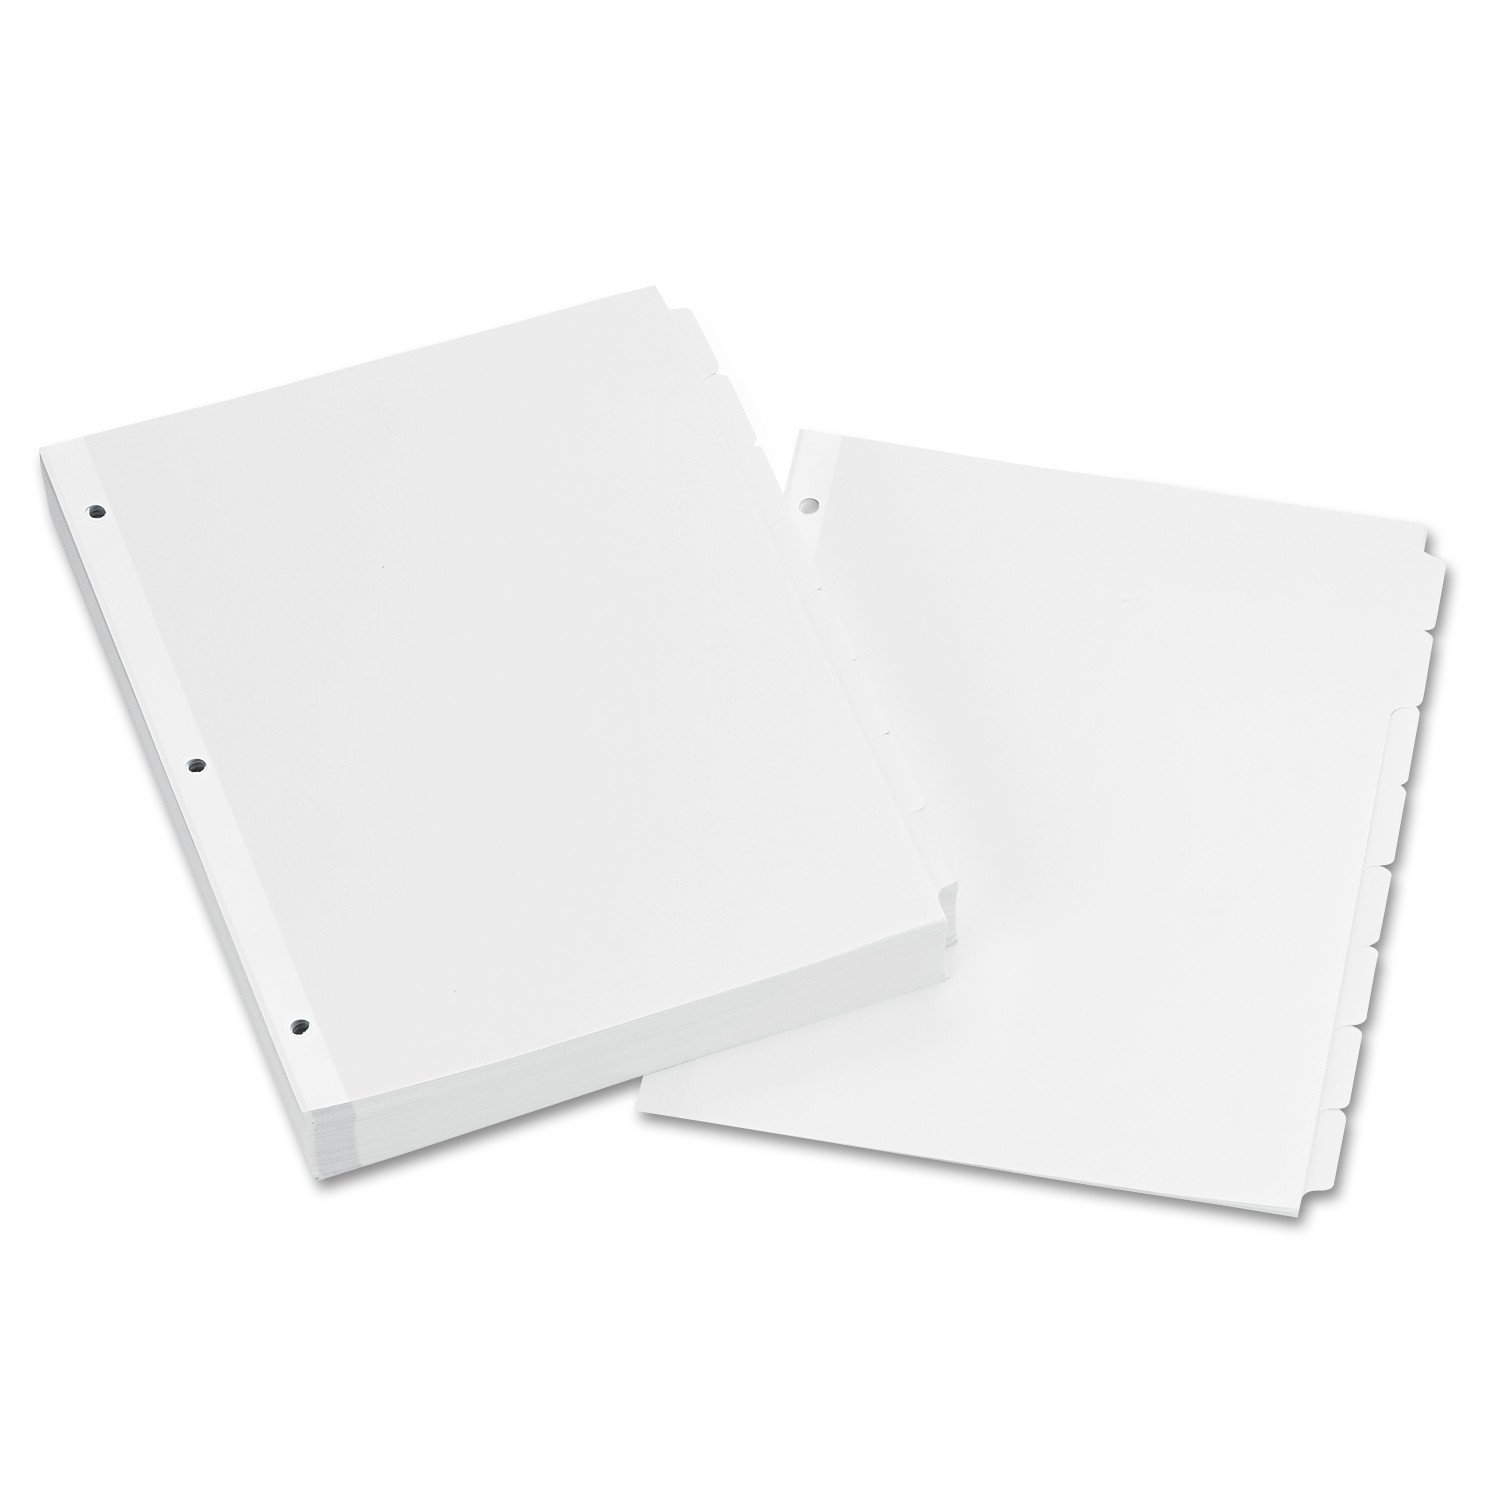 Avery 11507 Write & Erase Plain-Tab Paper Dividers, 8-Tab, Letter, White (Box of 24 Sets)